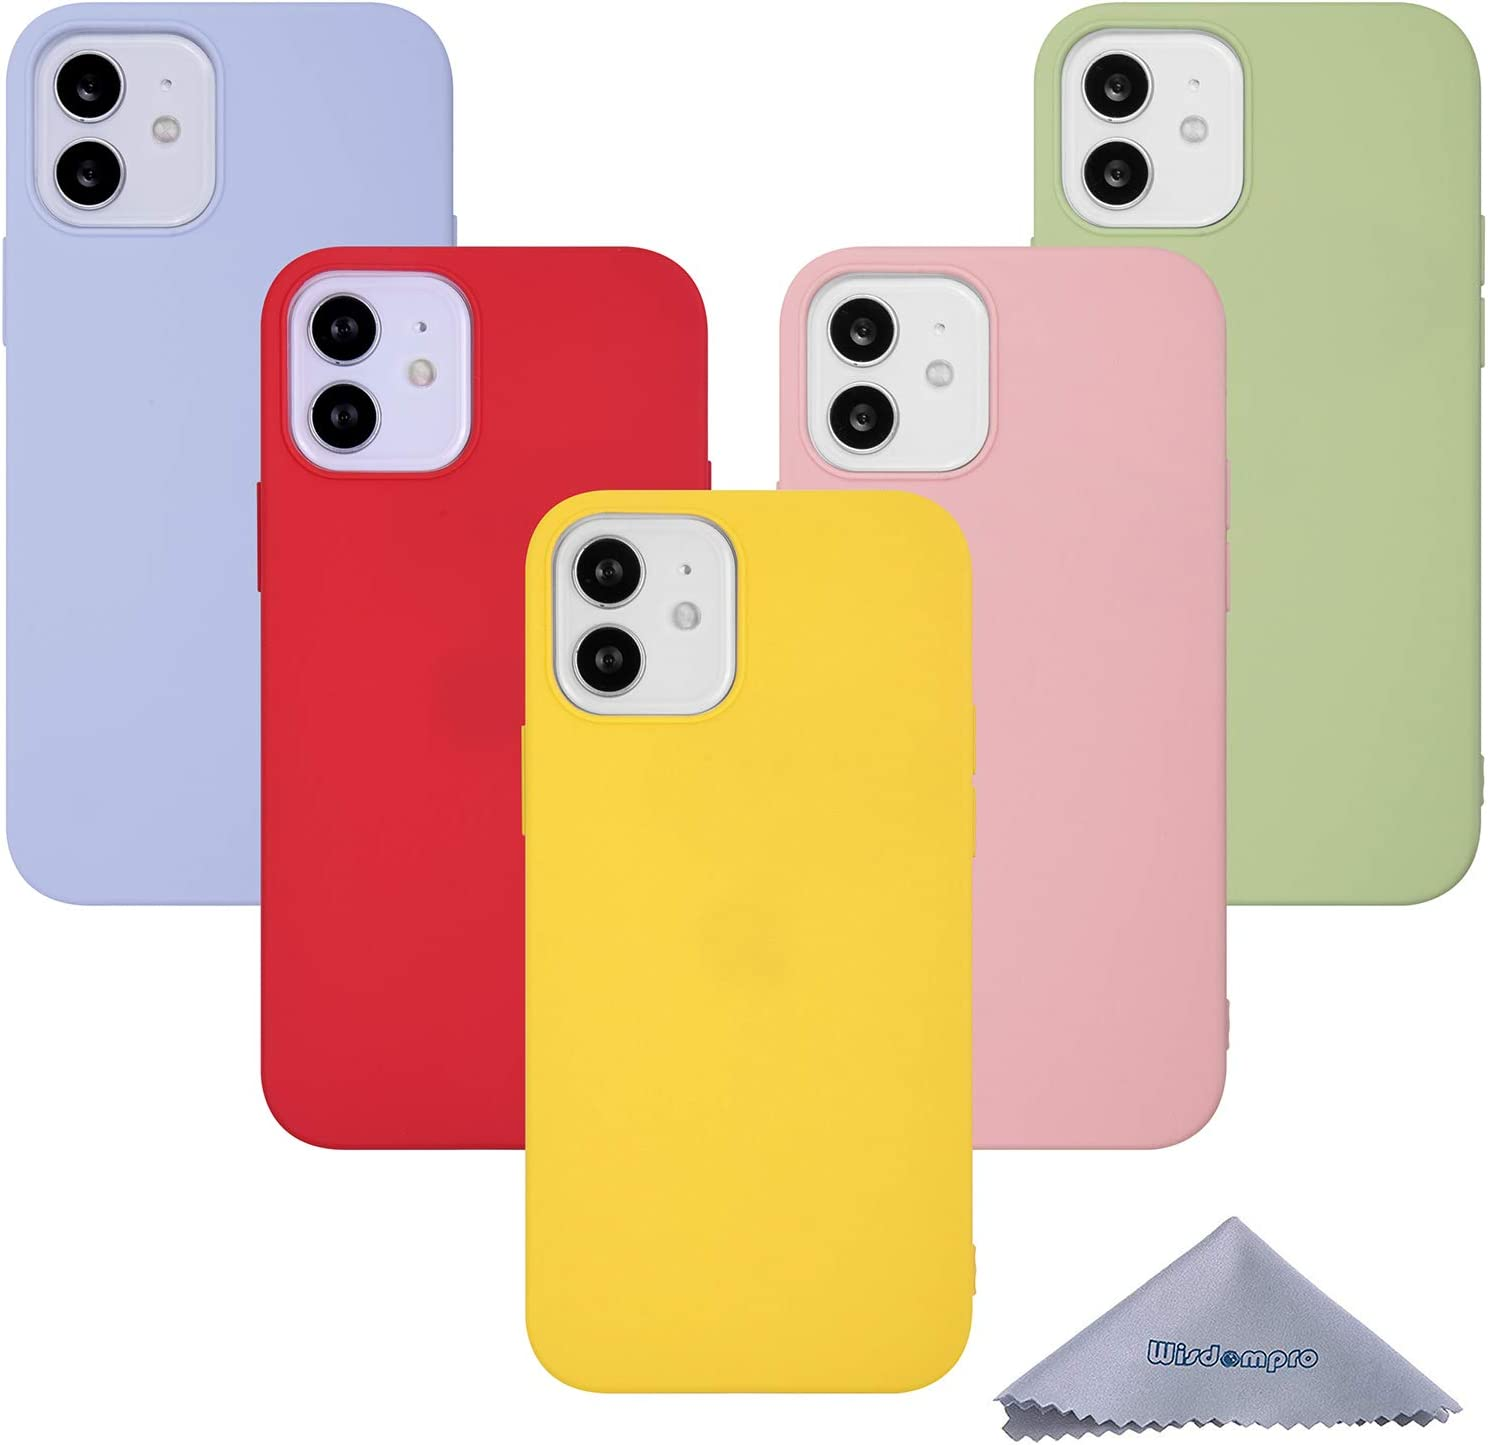 iPhone 12 Pro Case, iPhone 12 Case, Wisdompro Bundle of 5 Pack Extra Thin Slim Soft TPU Gel Protective Case Cover for 6.1 Inch Apple iPhone 12 Pro and iPhone 12 (Green, Light Blue, Pink, Yellow, Red)